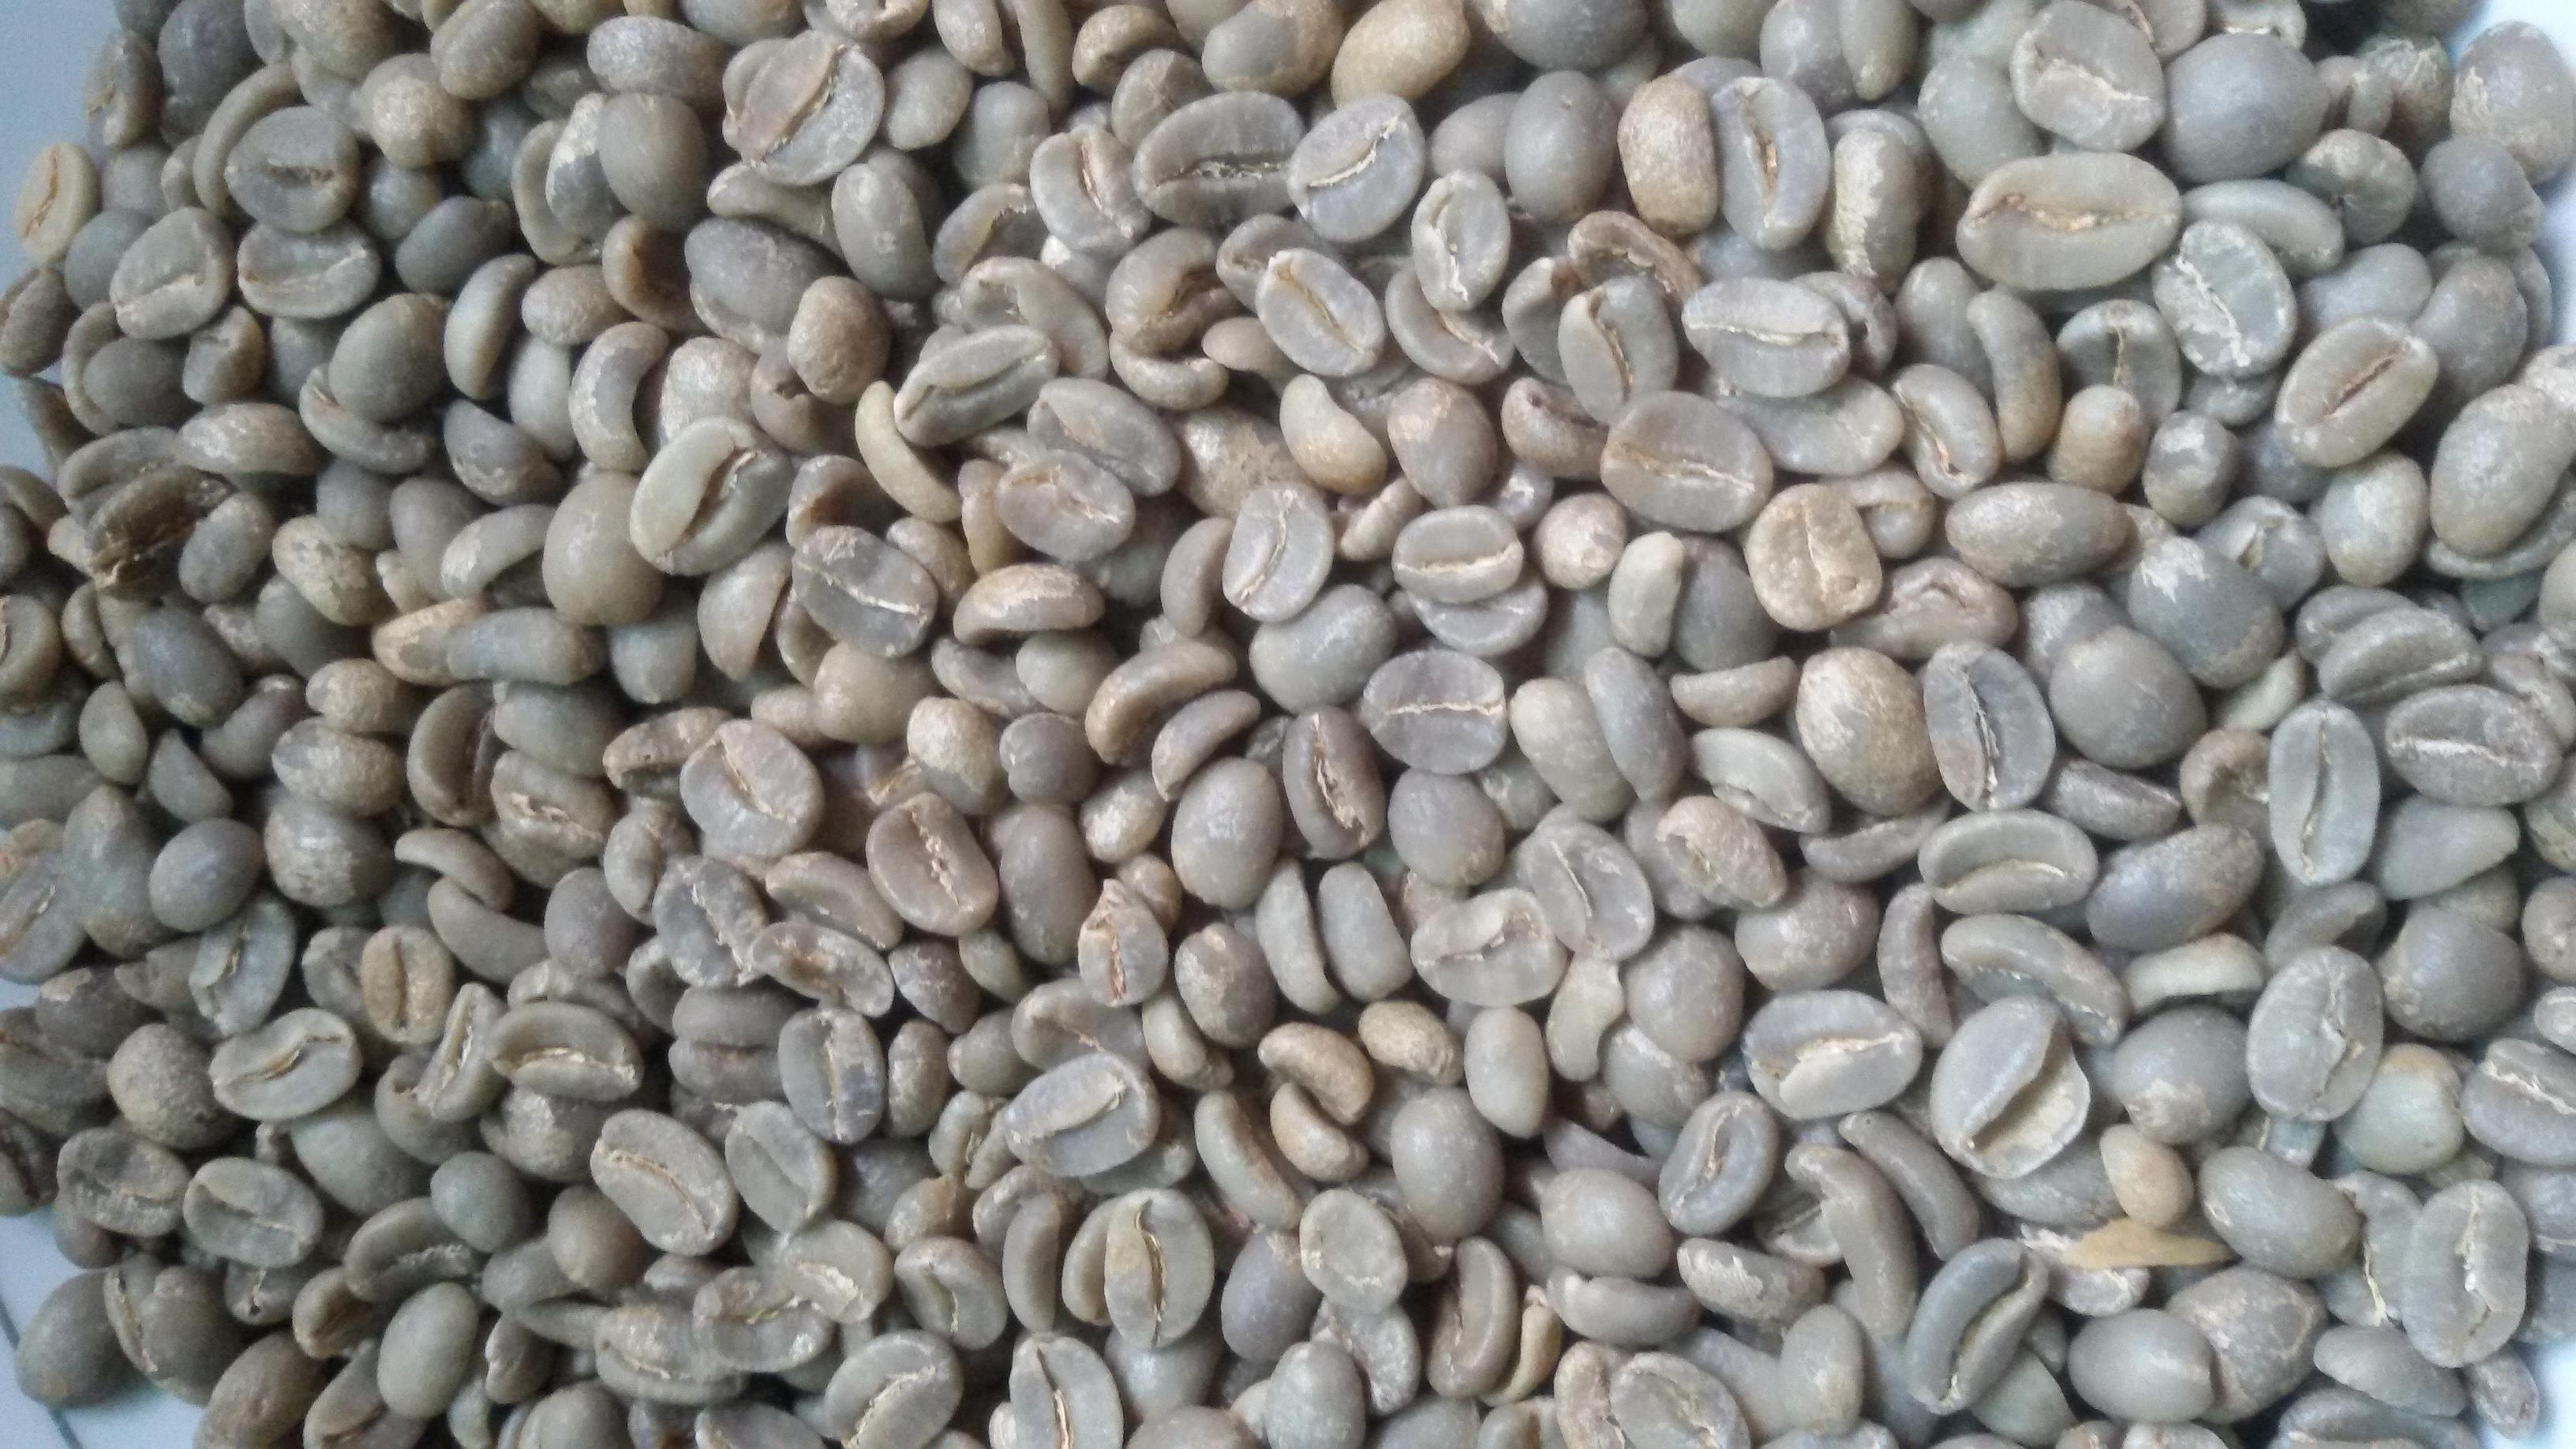 Export Biji Kopi Mentah Sumatera Arabika G1 From Indonesia